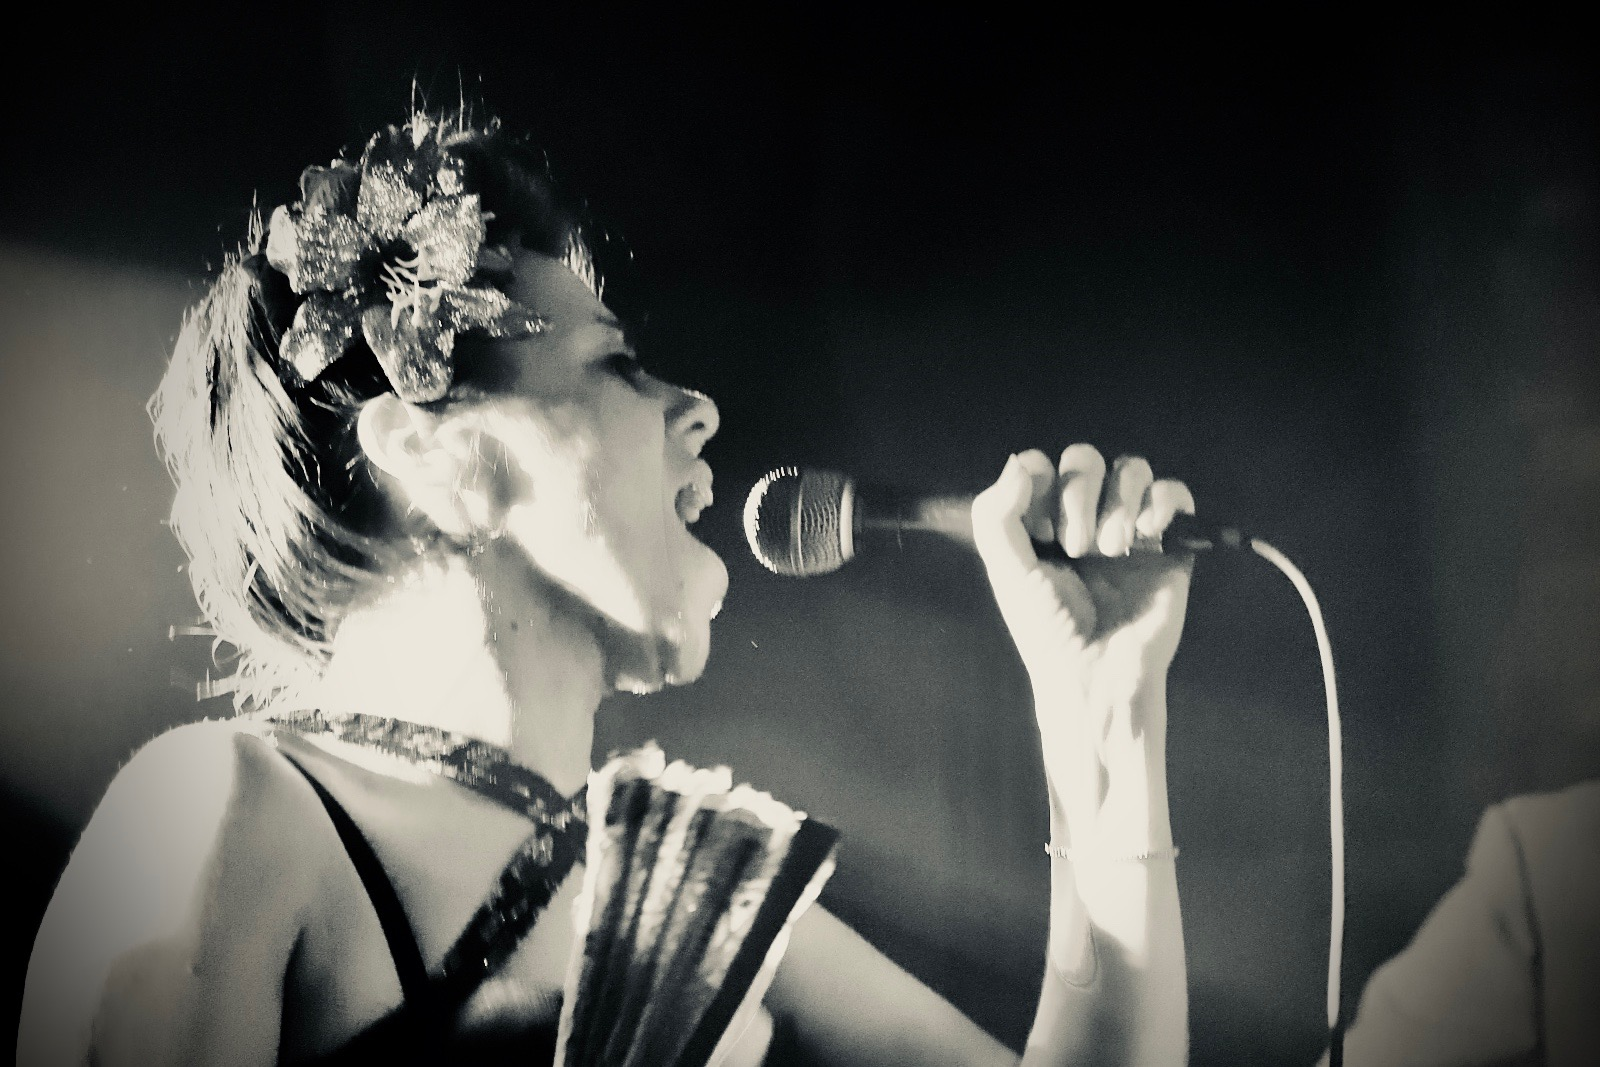 SISTER SUZIE - RHYTHM & BLUES / ROCK N ROLLDOOR 7PM / MUSIC 8.30PM£10 / £9 / £5 (BK)EMAIL TO RESERVE